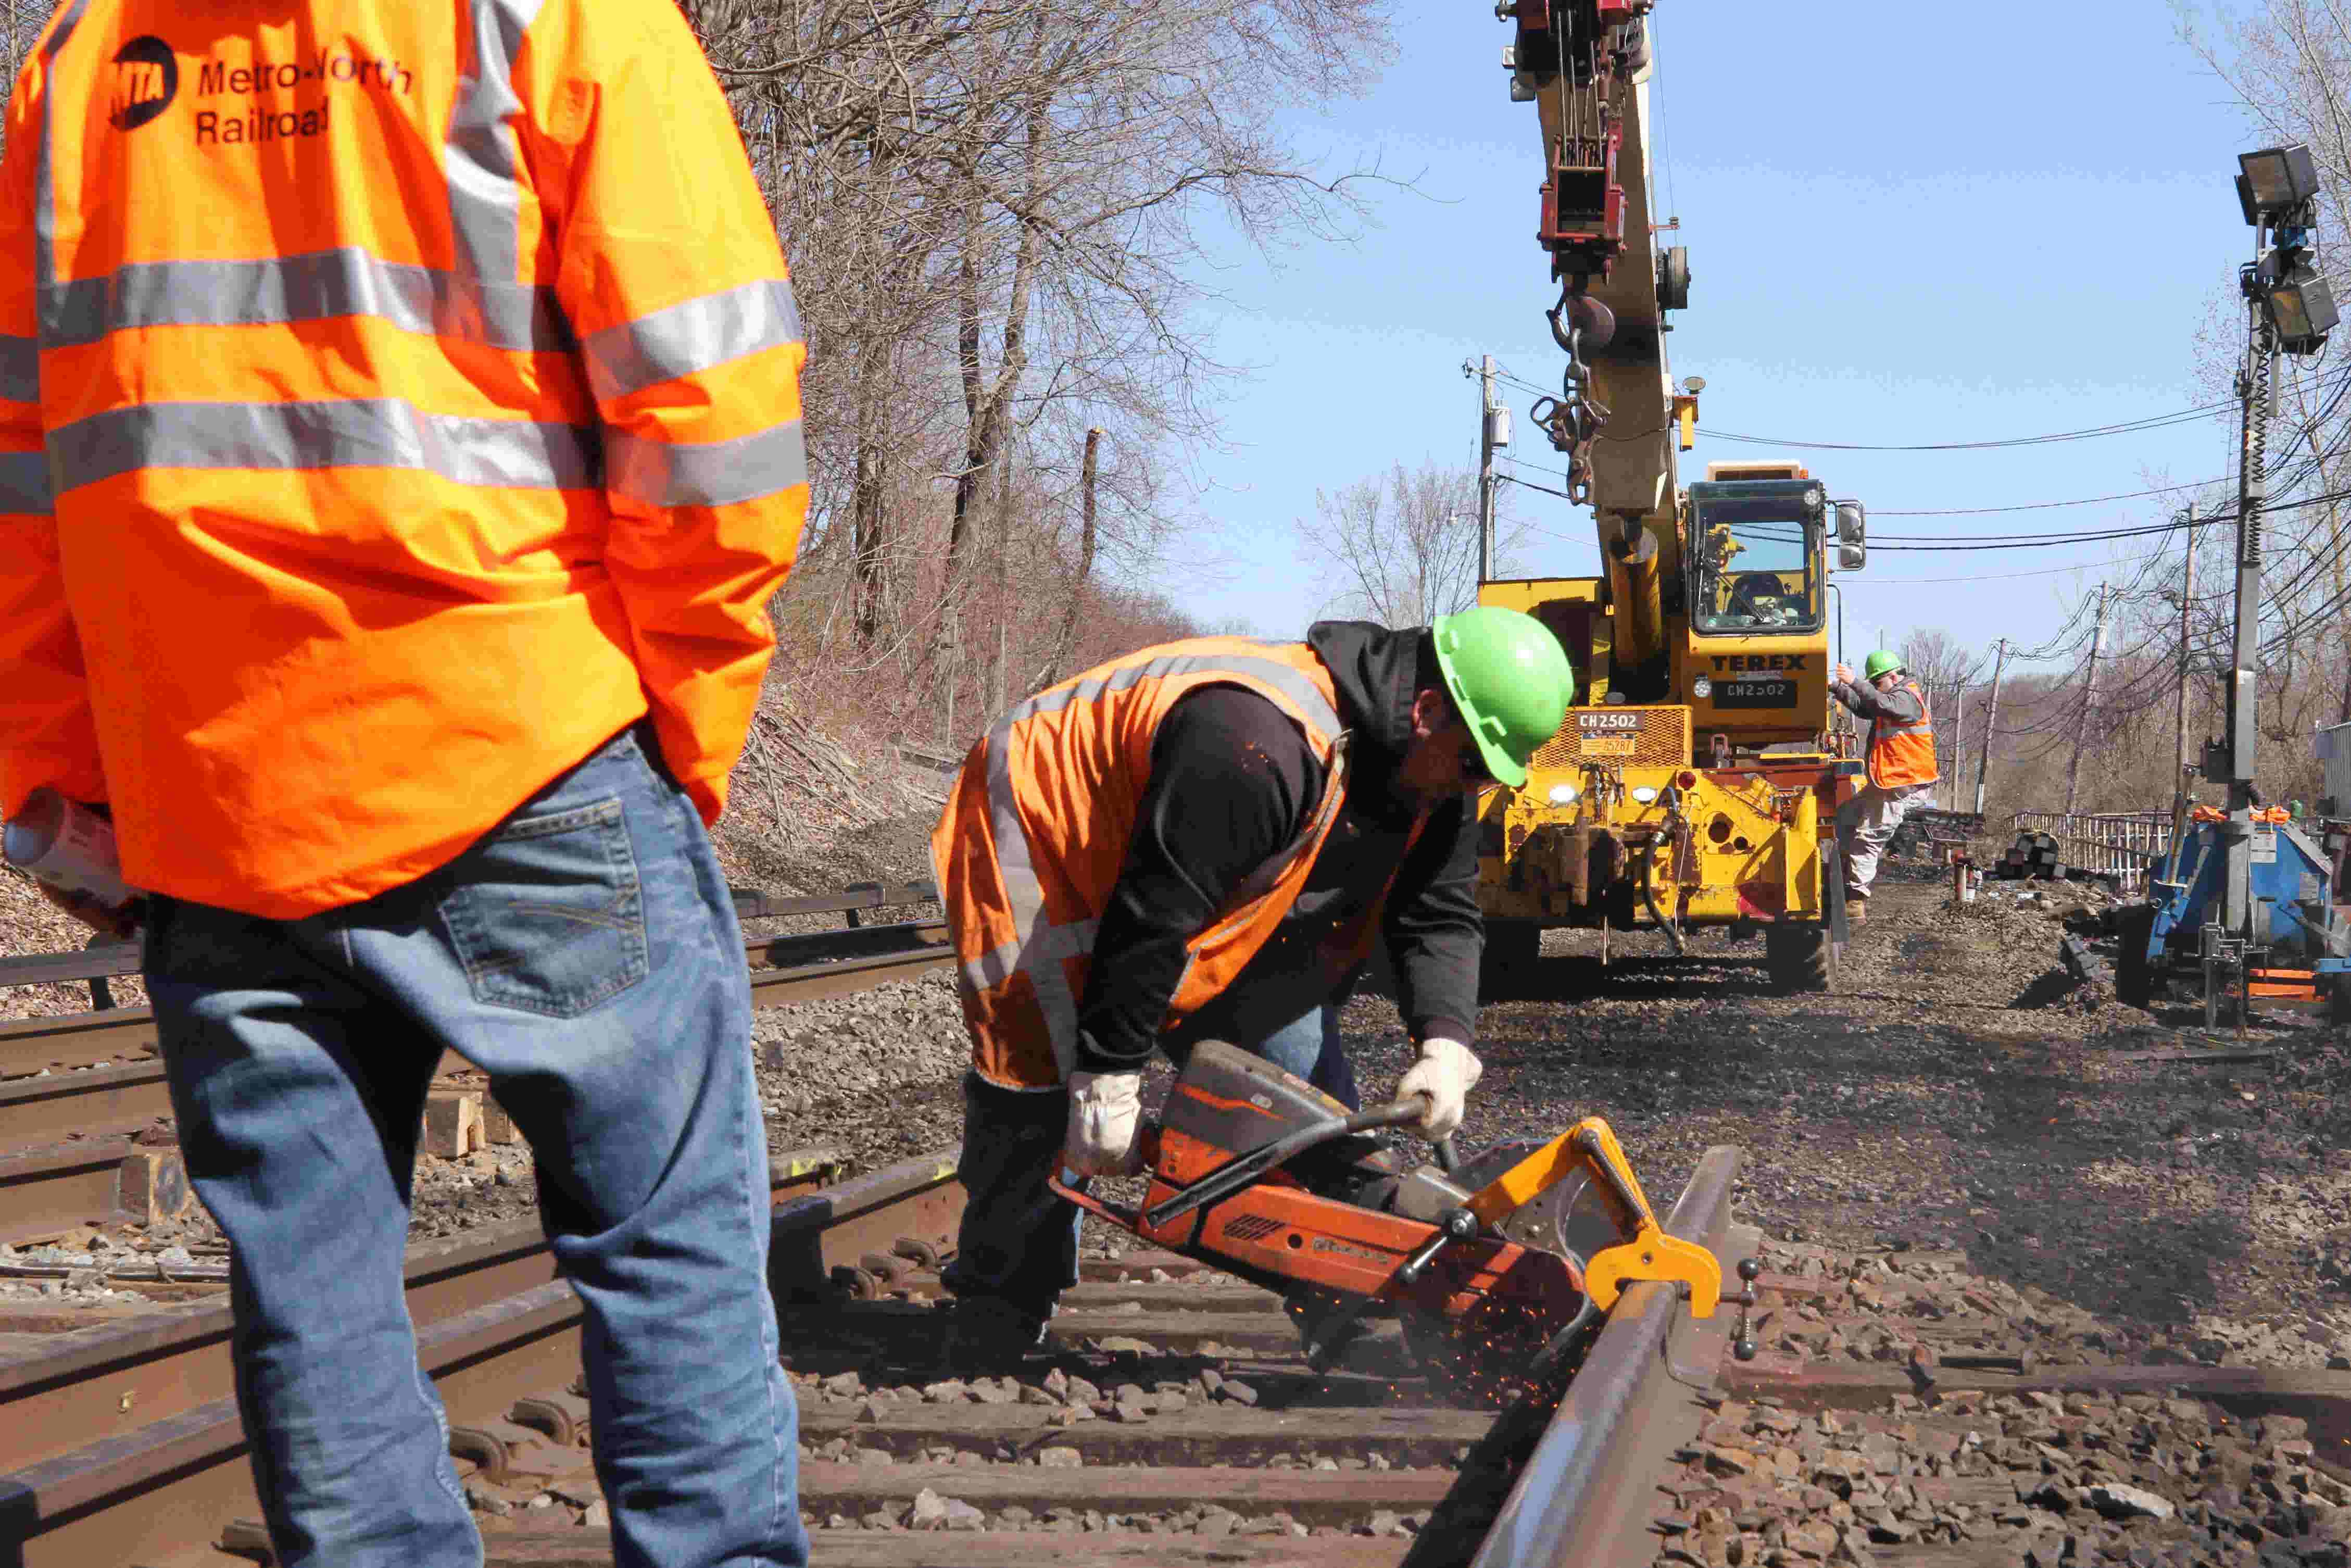 Commuters react to Metro-North track workers' immense overtime earnings